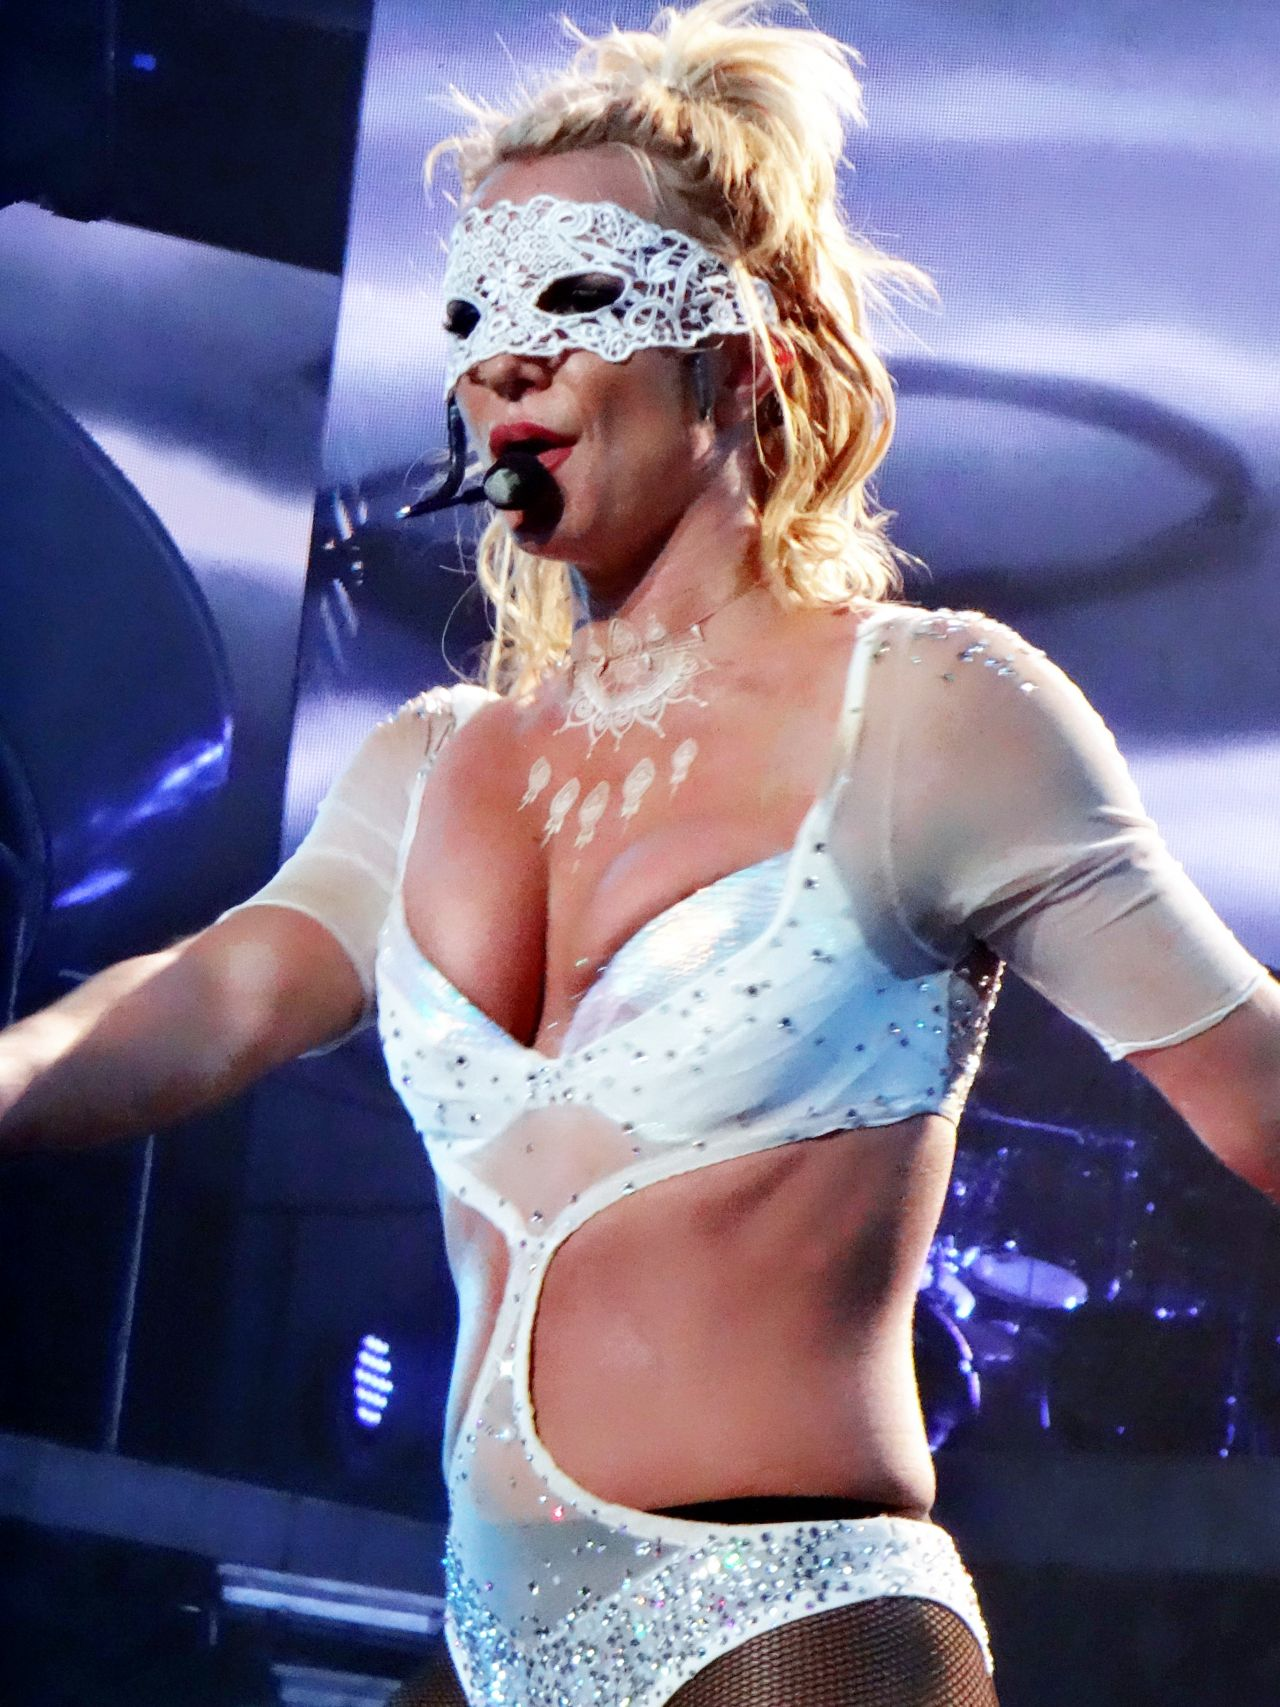 britney-spears-performing-at-her-piece-of-me-residency-in-las-vegas-1-11-2017-15.jpg